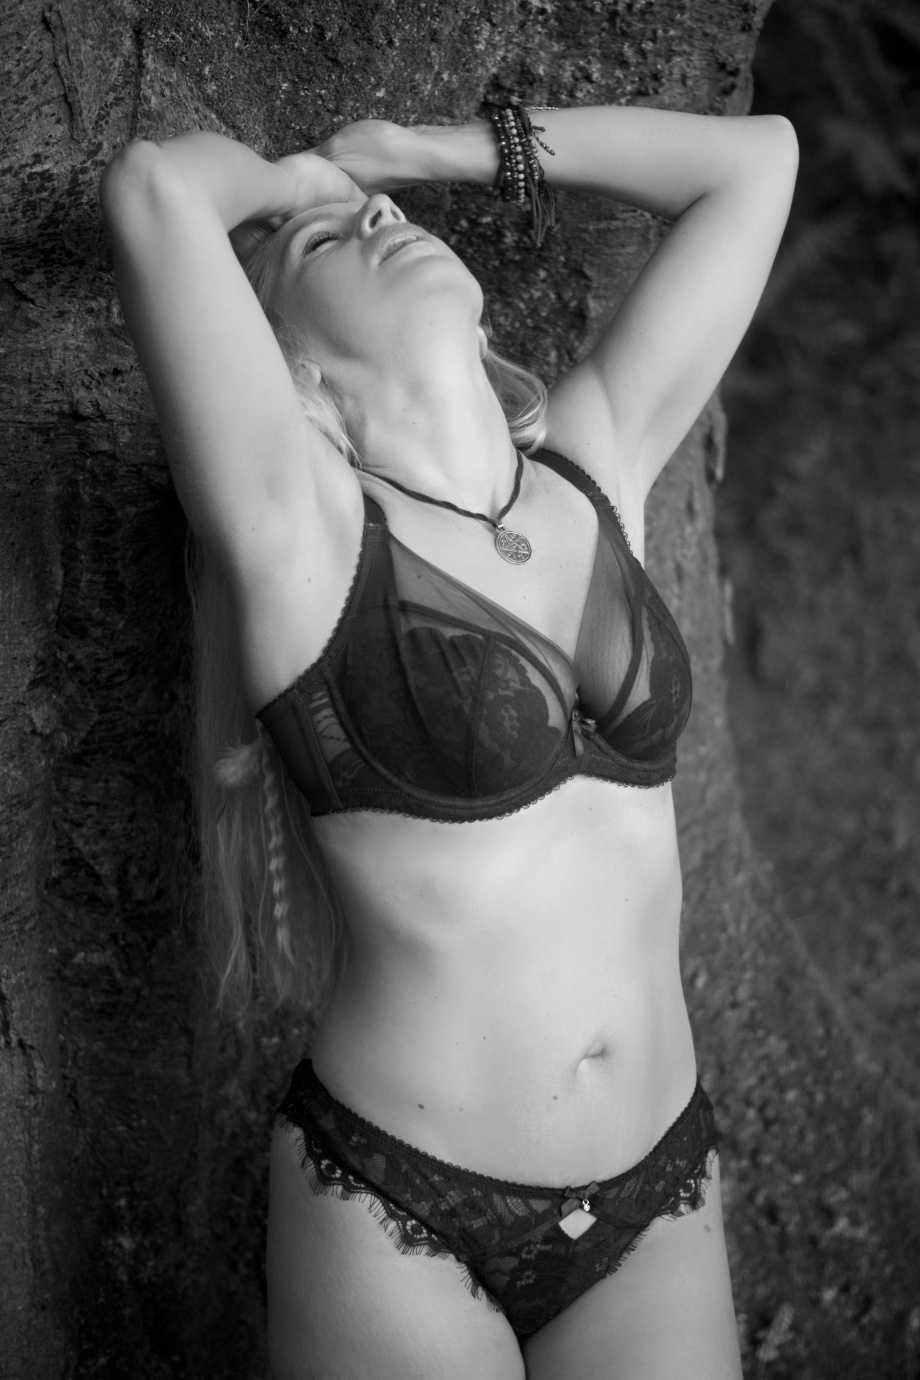 cork, ireland, glamour photography, boudoir, black and white